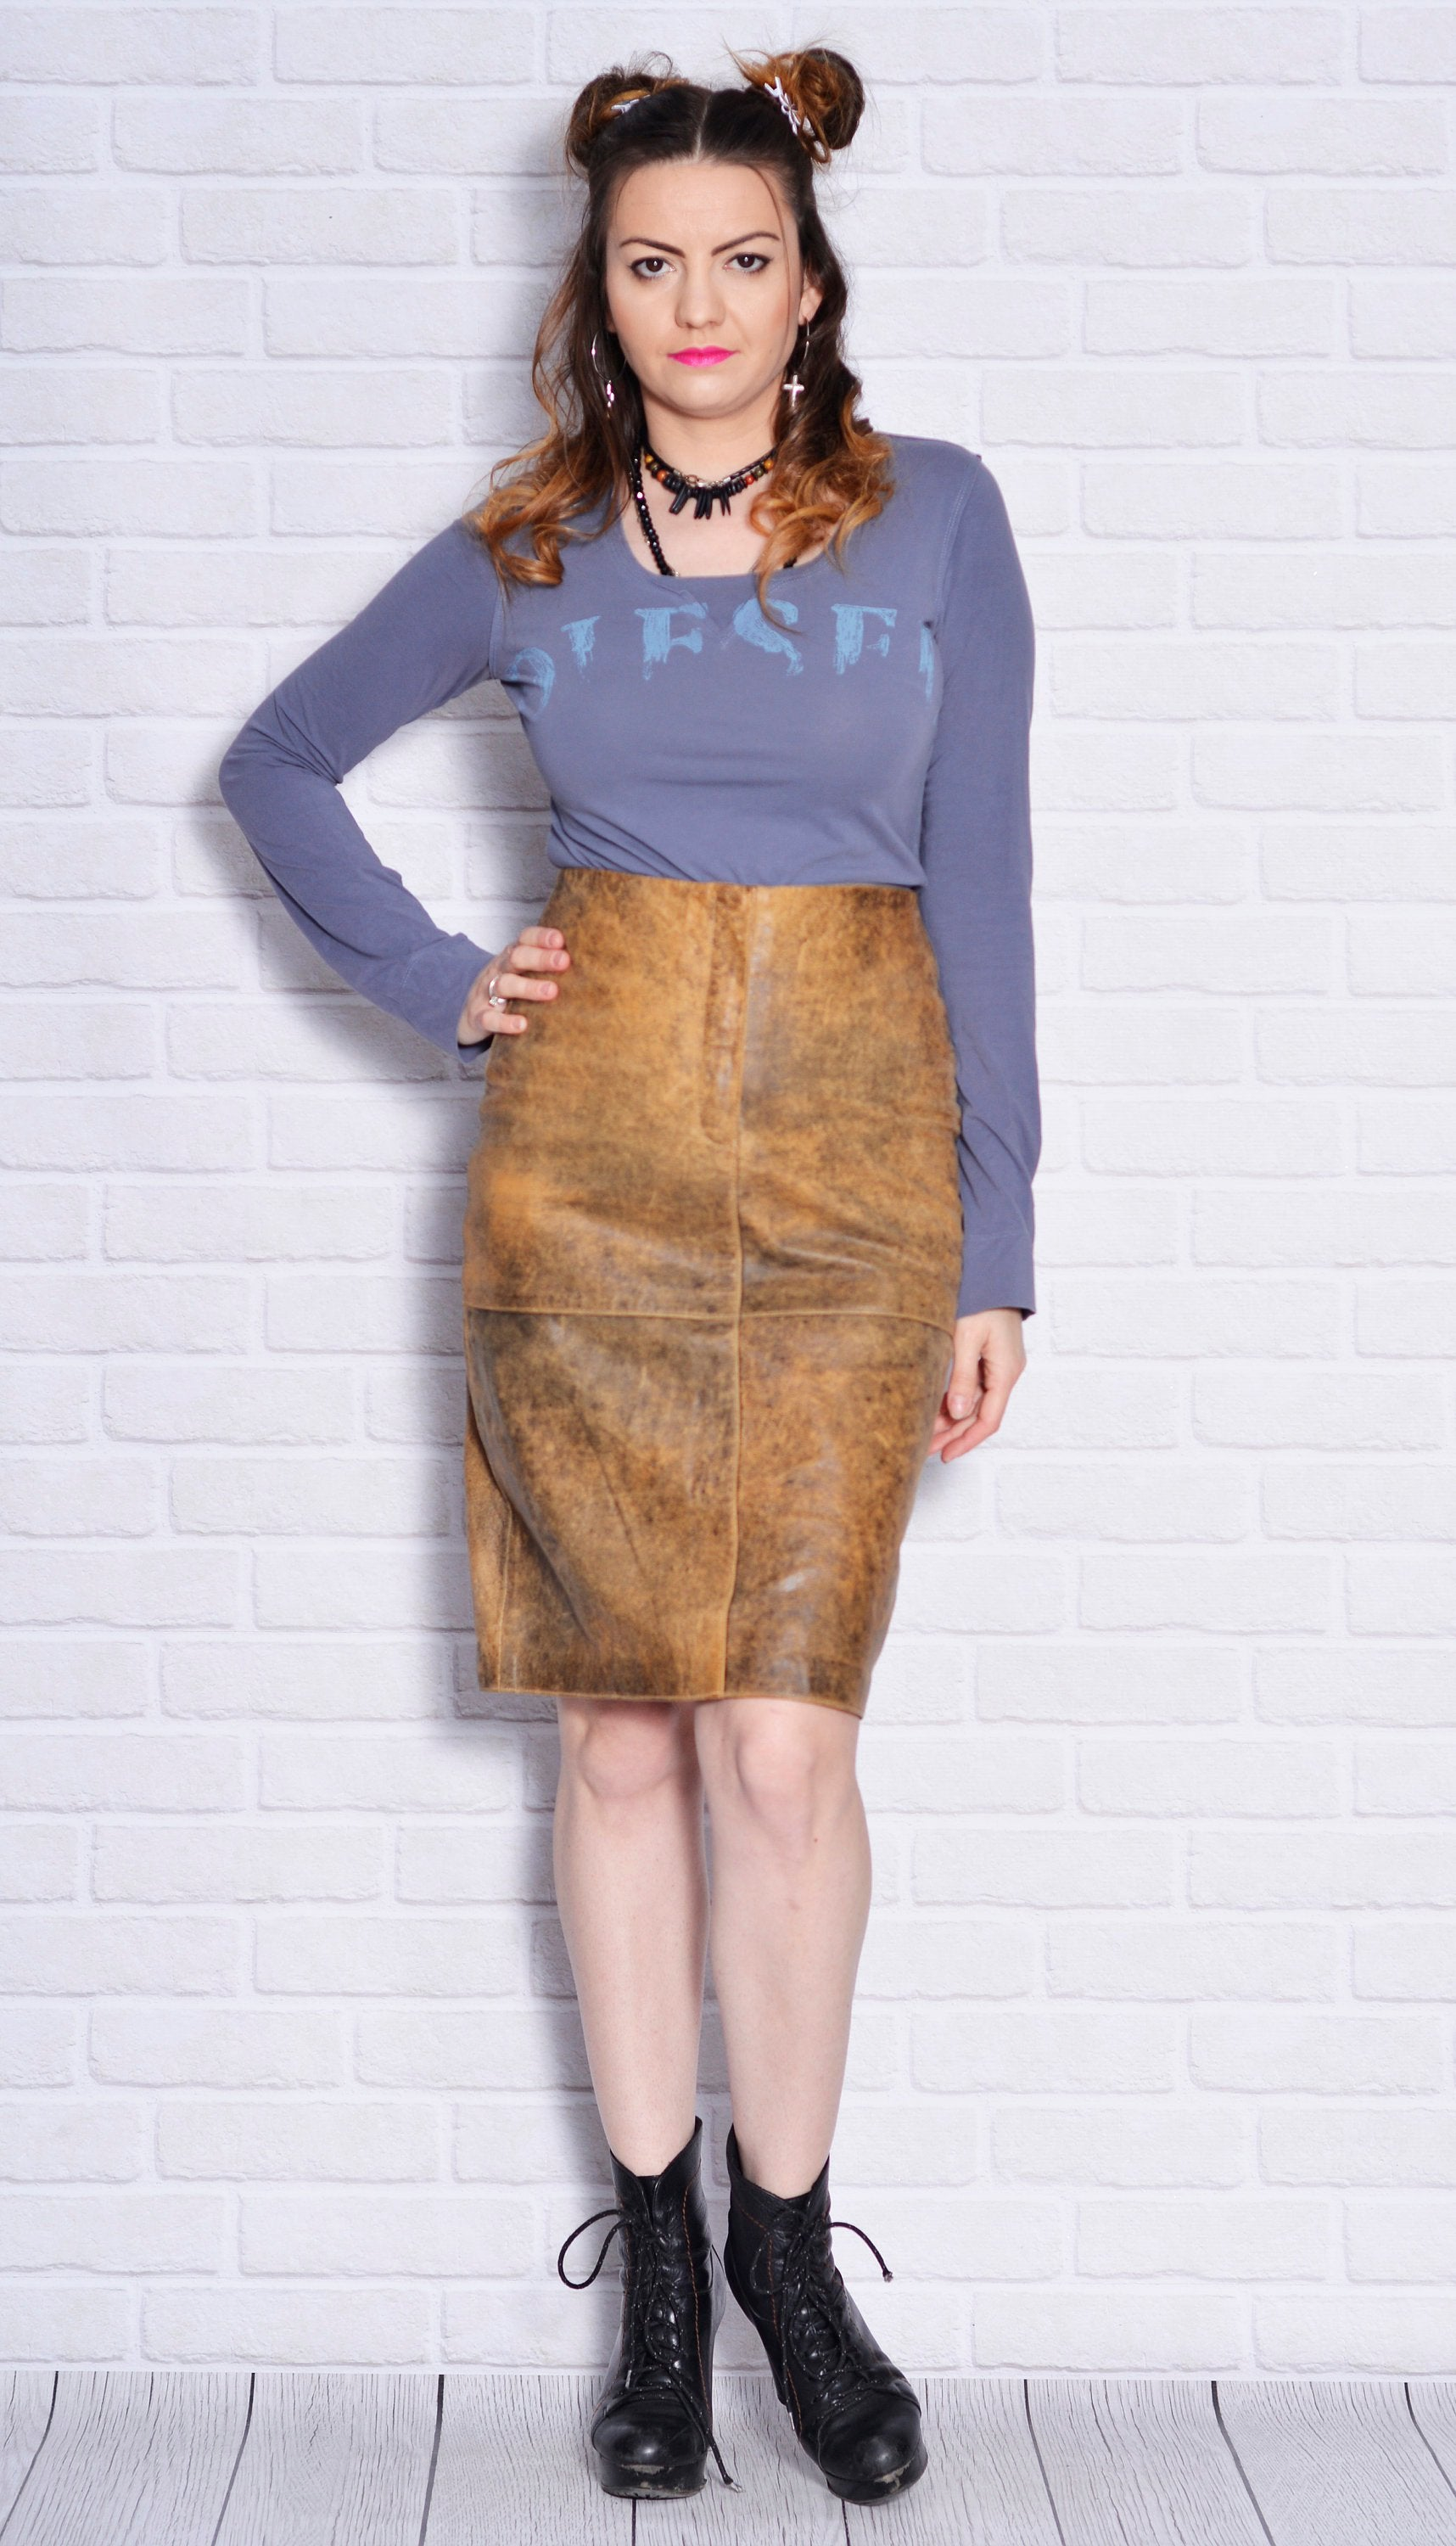 Vintage Wild Child Sheath Leather Skirt - Vintage Clothes